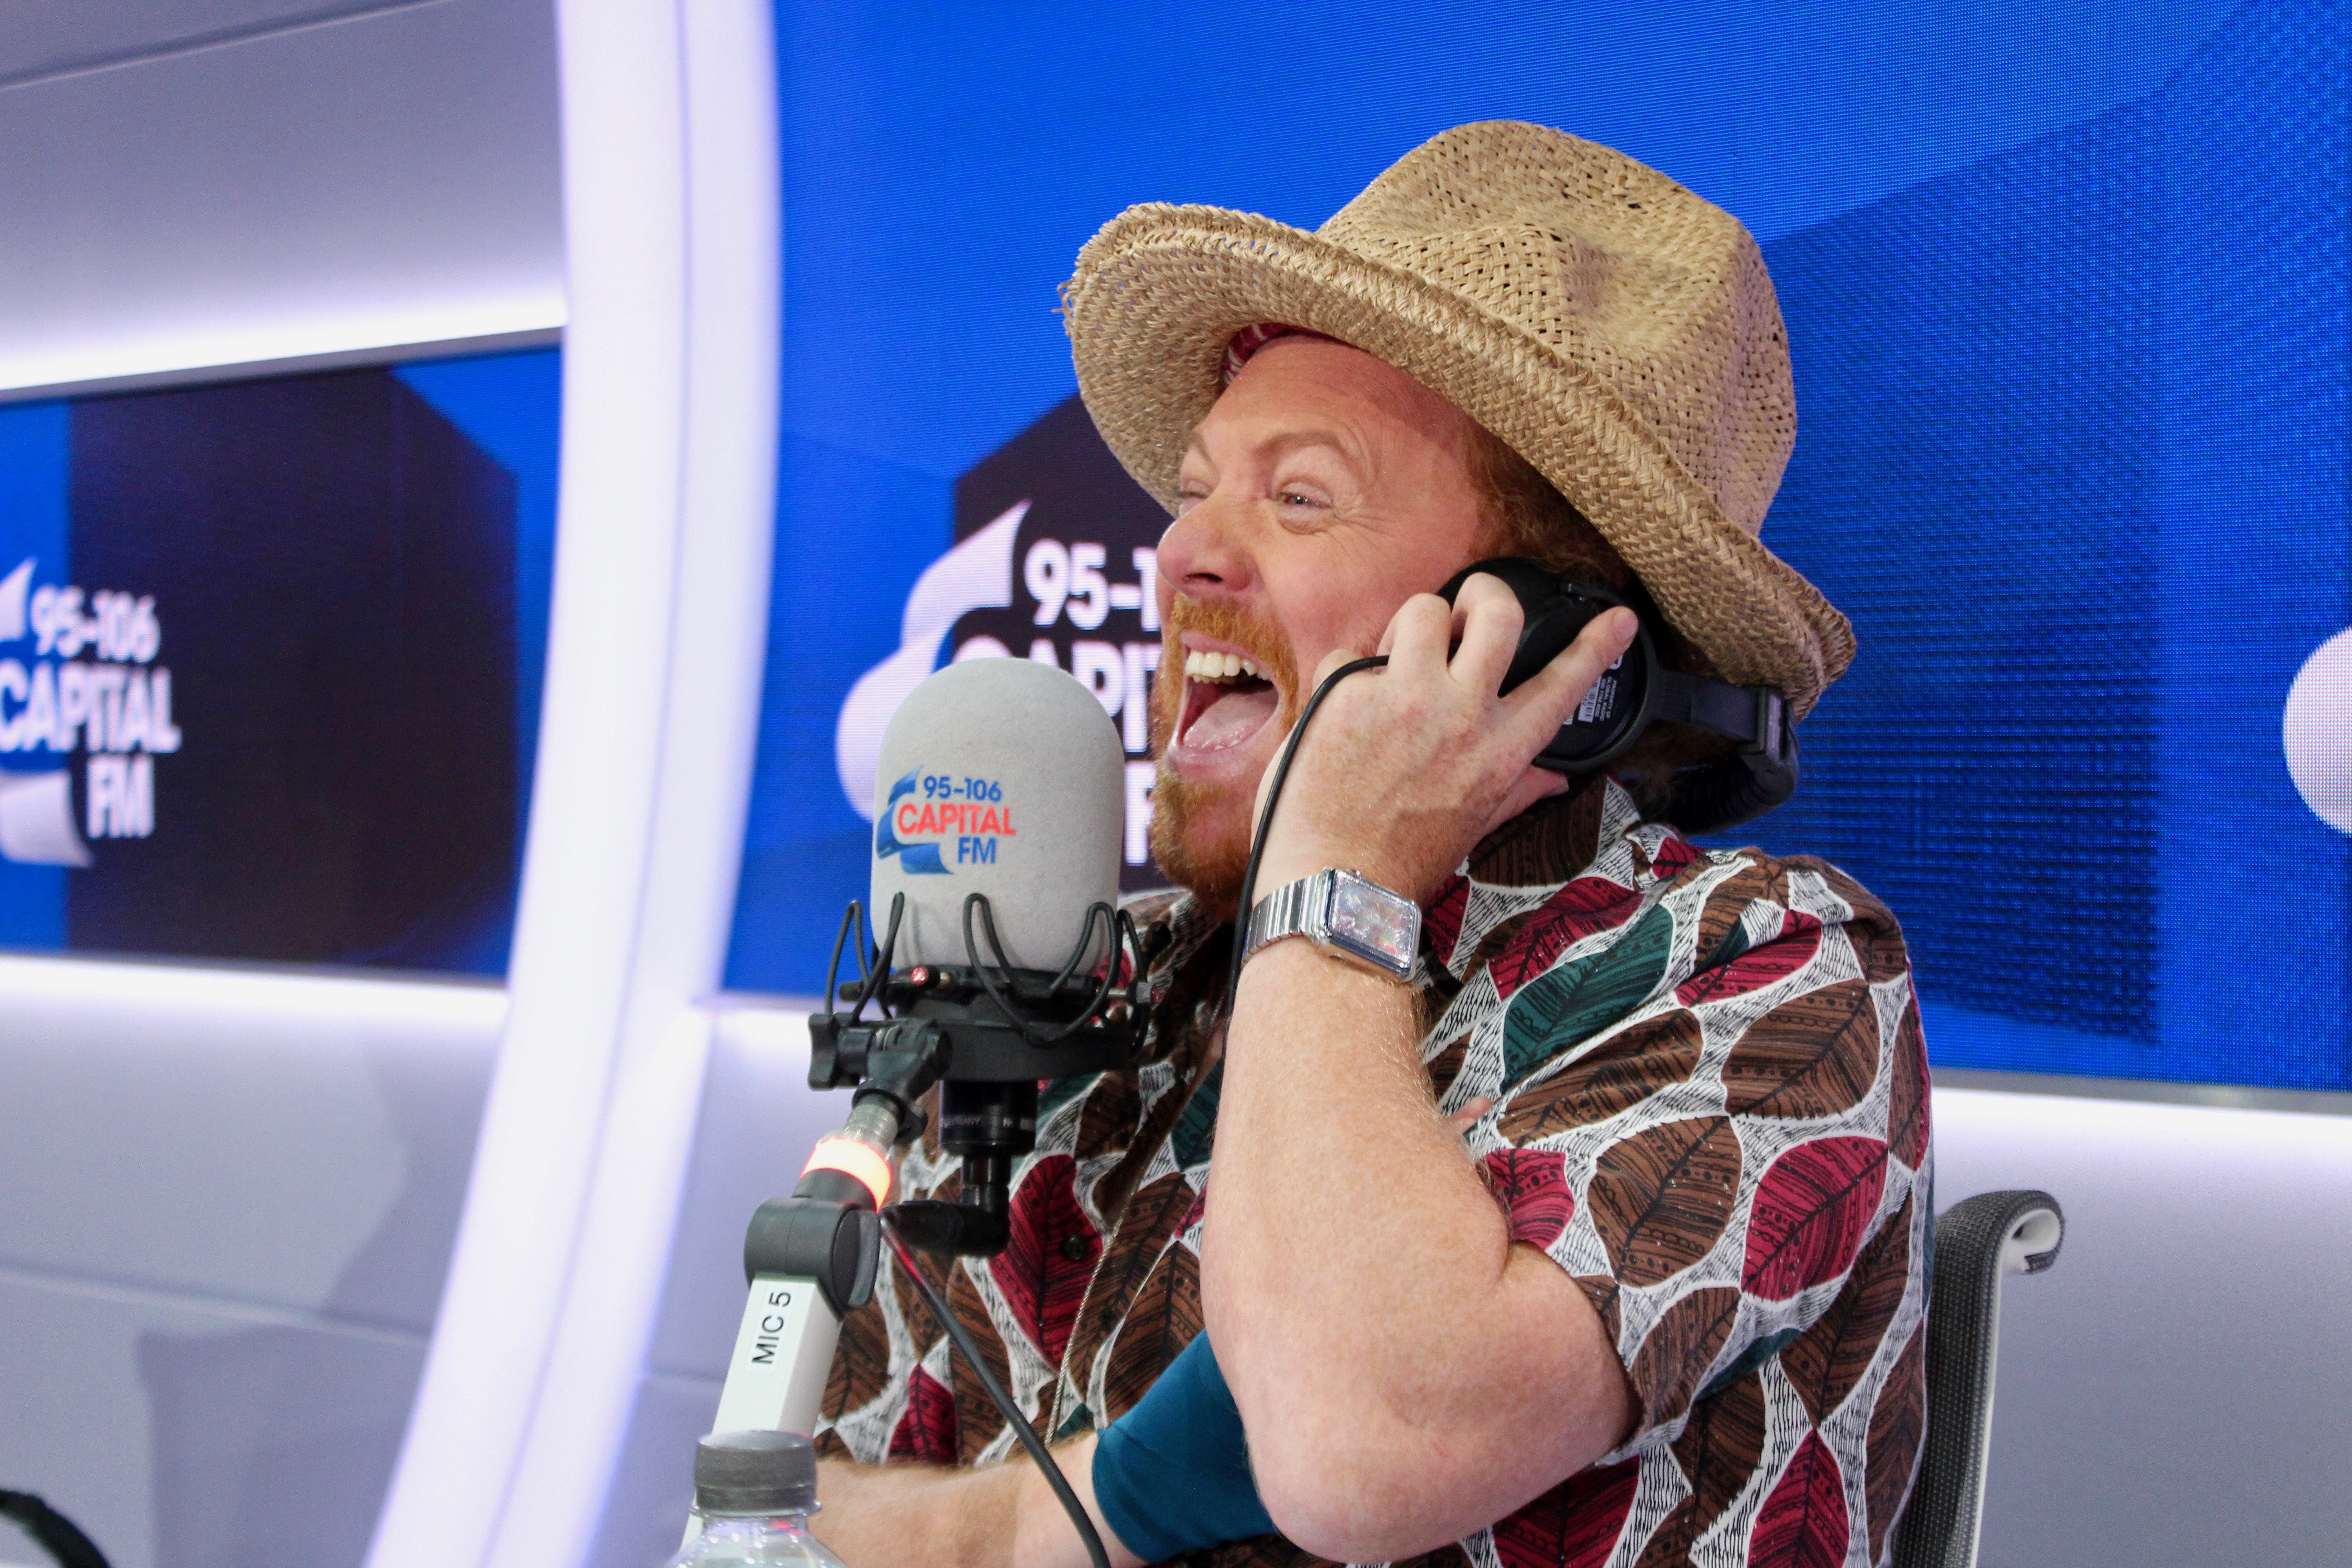 Keith Lemon on Capital w/ Roman Kemp and Vick Hope